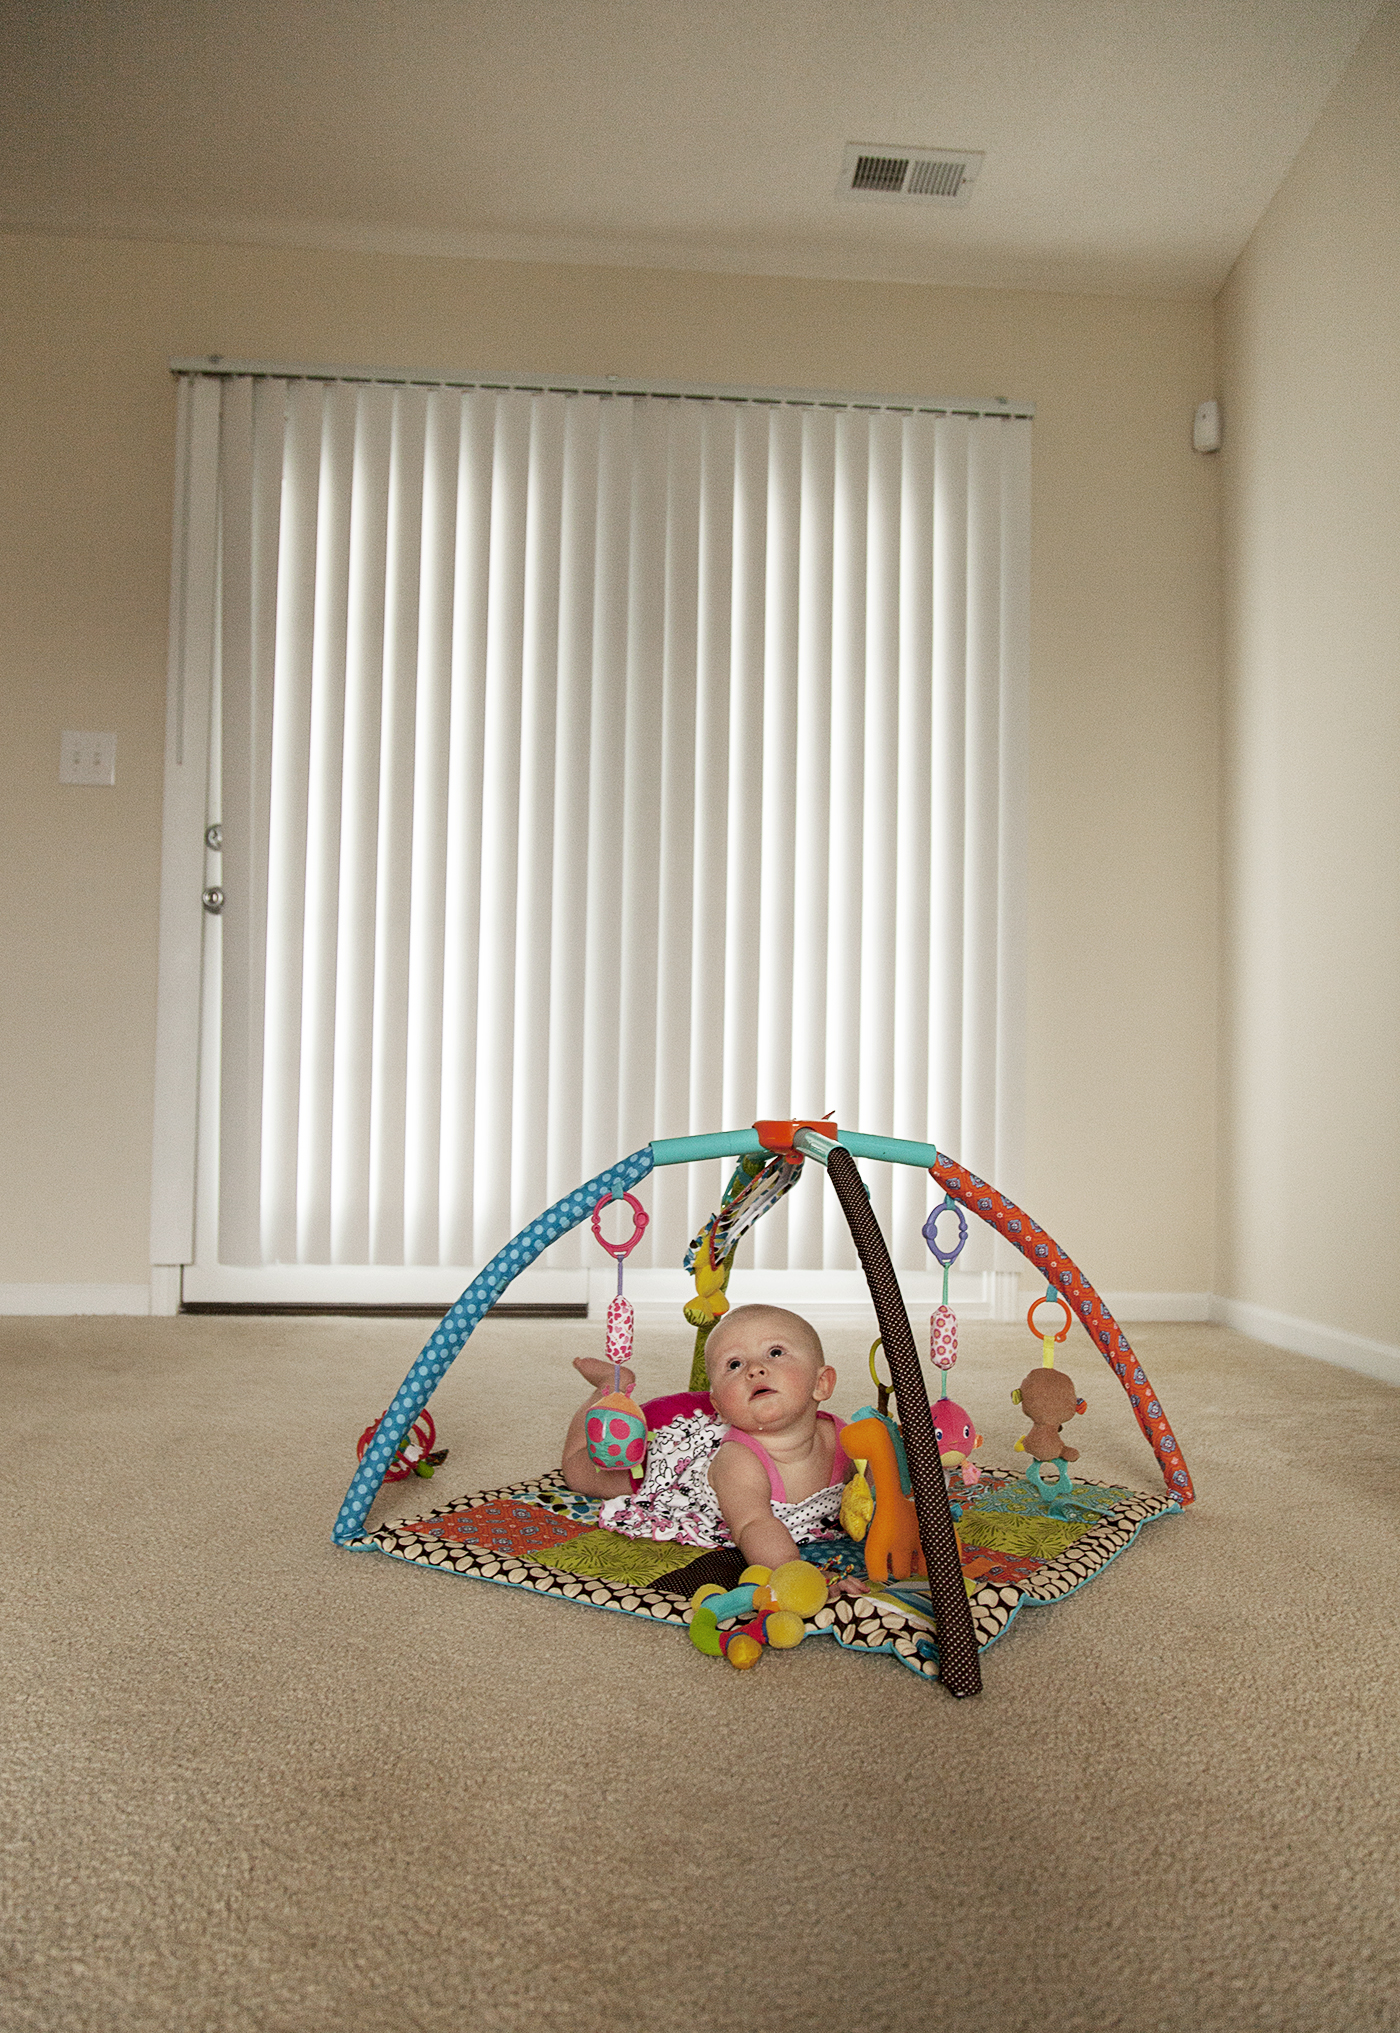 BabyintheHouseofBlinds_Web.jpg